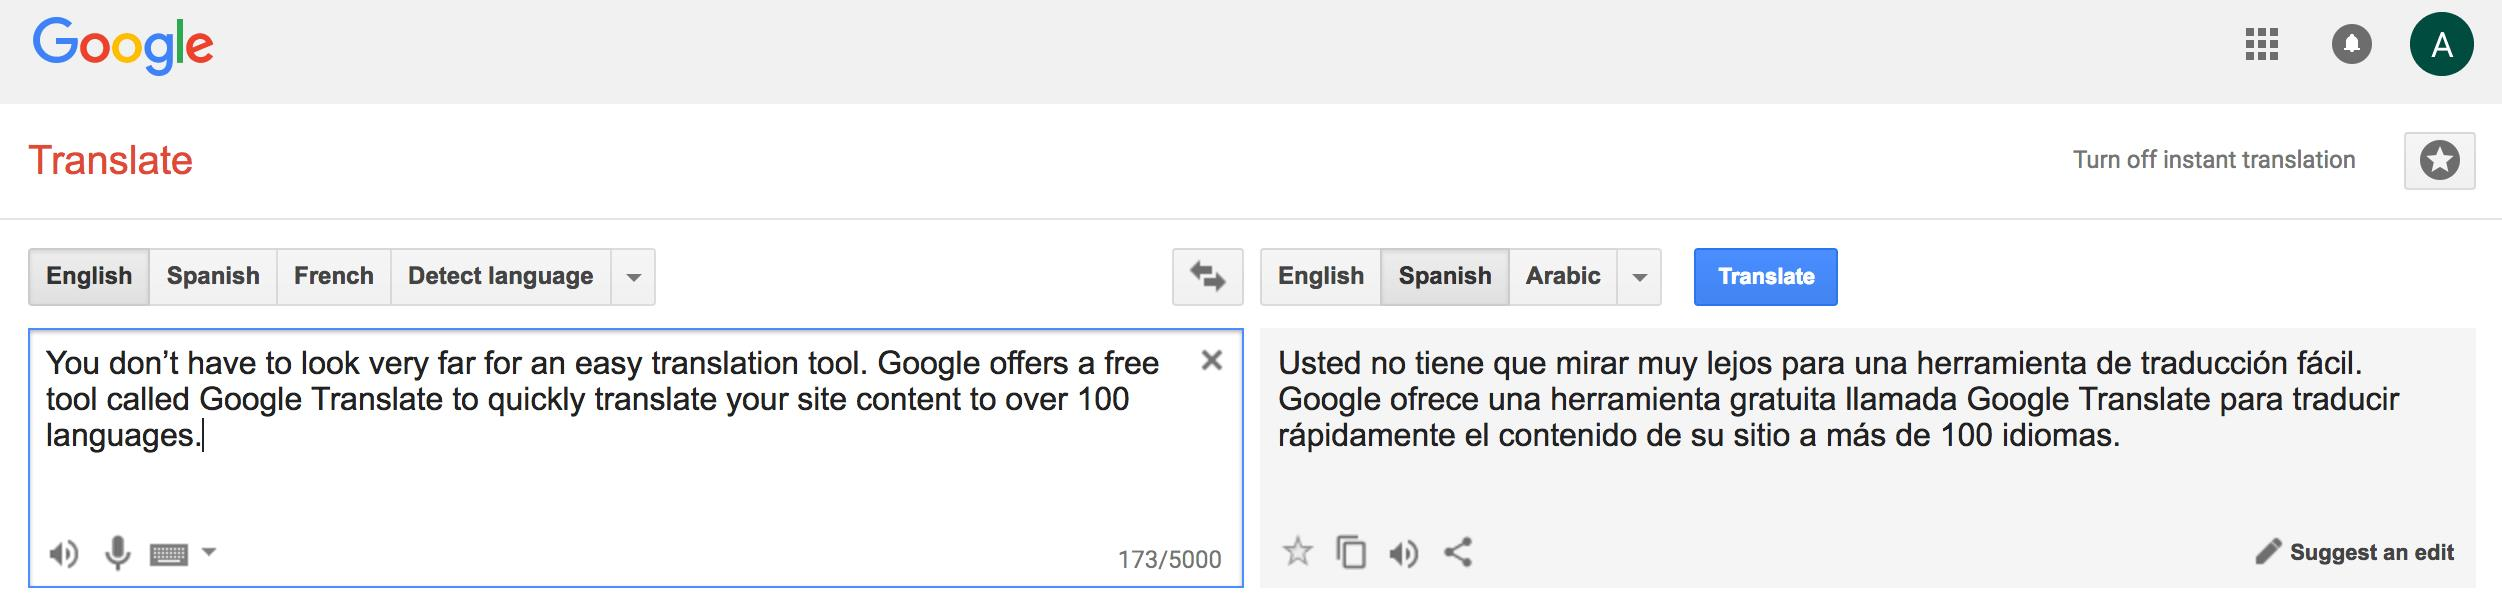 happy birthday google translate ; Google-Translate-Crazy-Egg